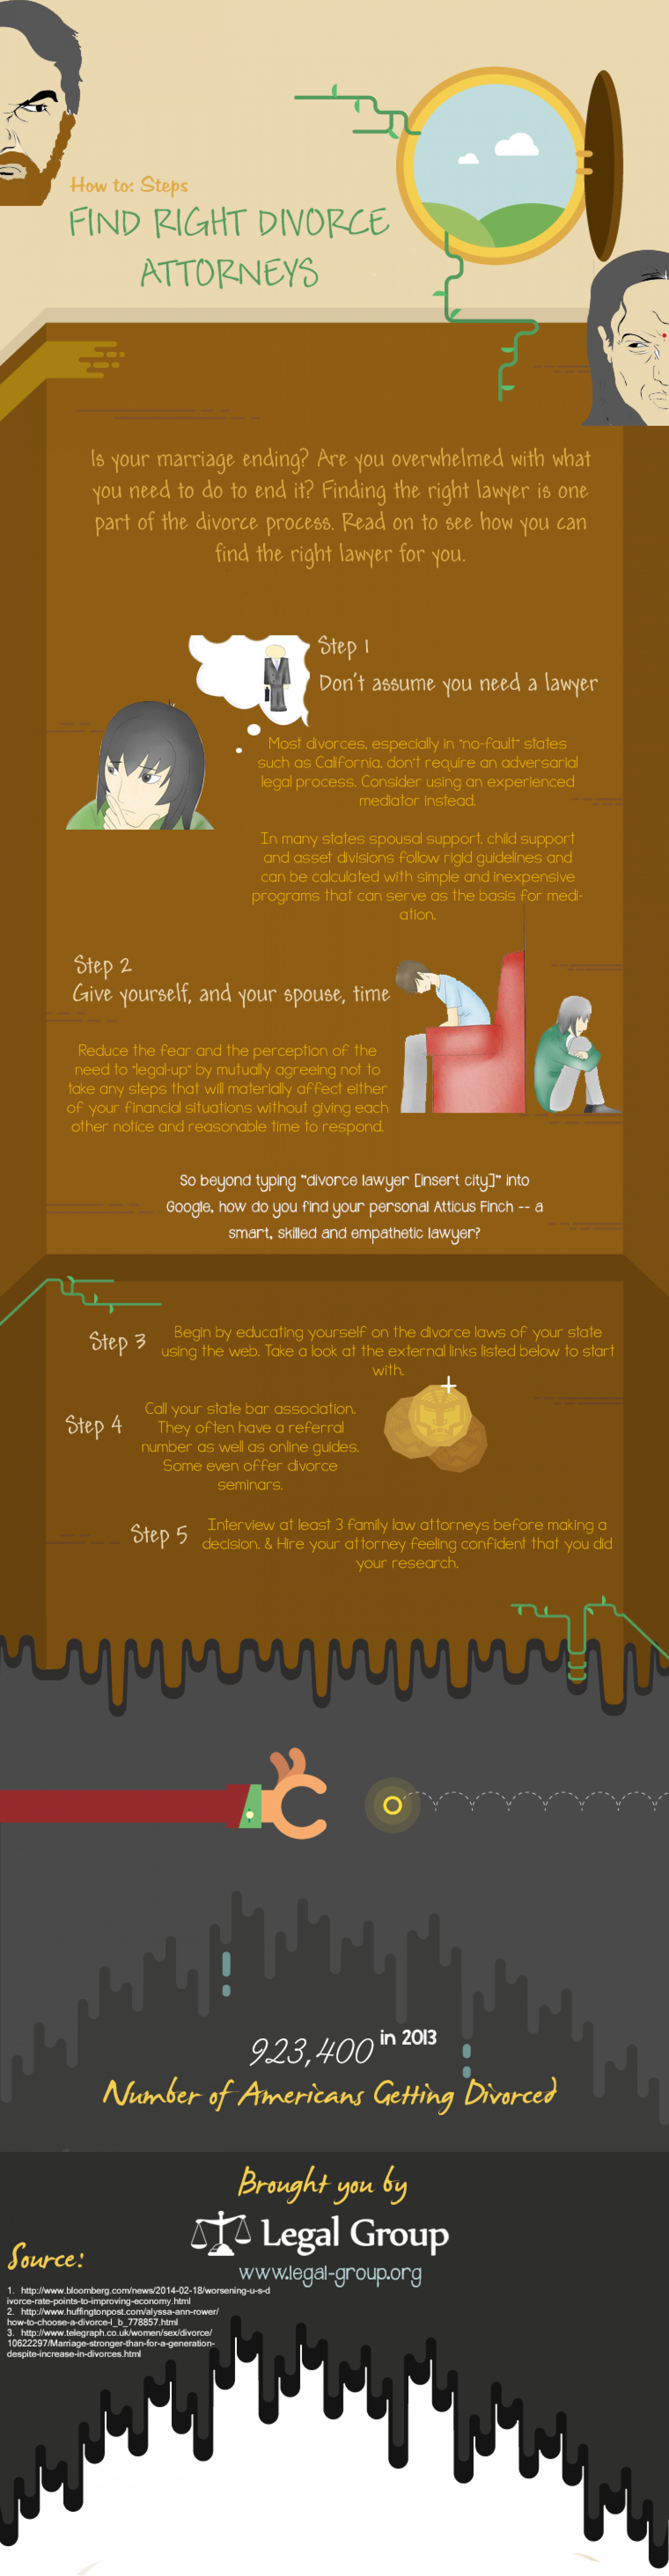 How To Find Right Divorce Attorneys  Infographic